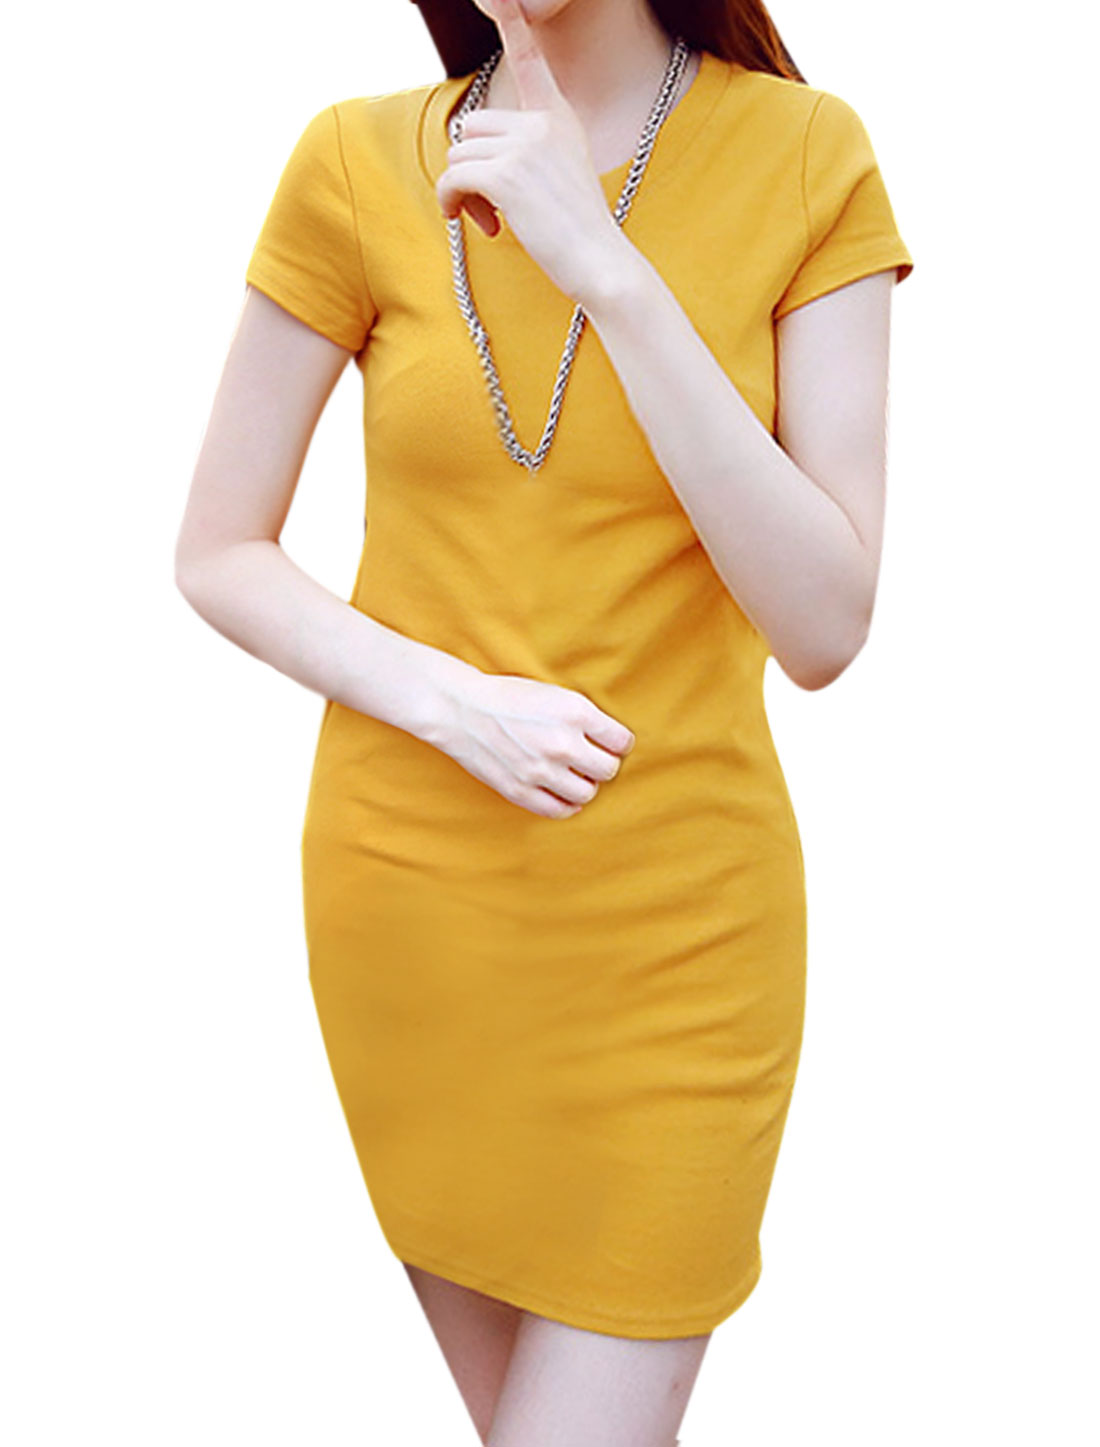 Ladies Round Neck Short Sleeves Slim Fit Pullover Tee Shirt Dress Yellow XS